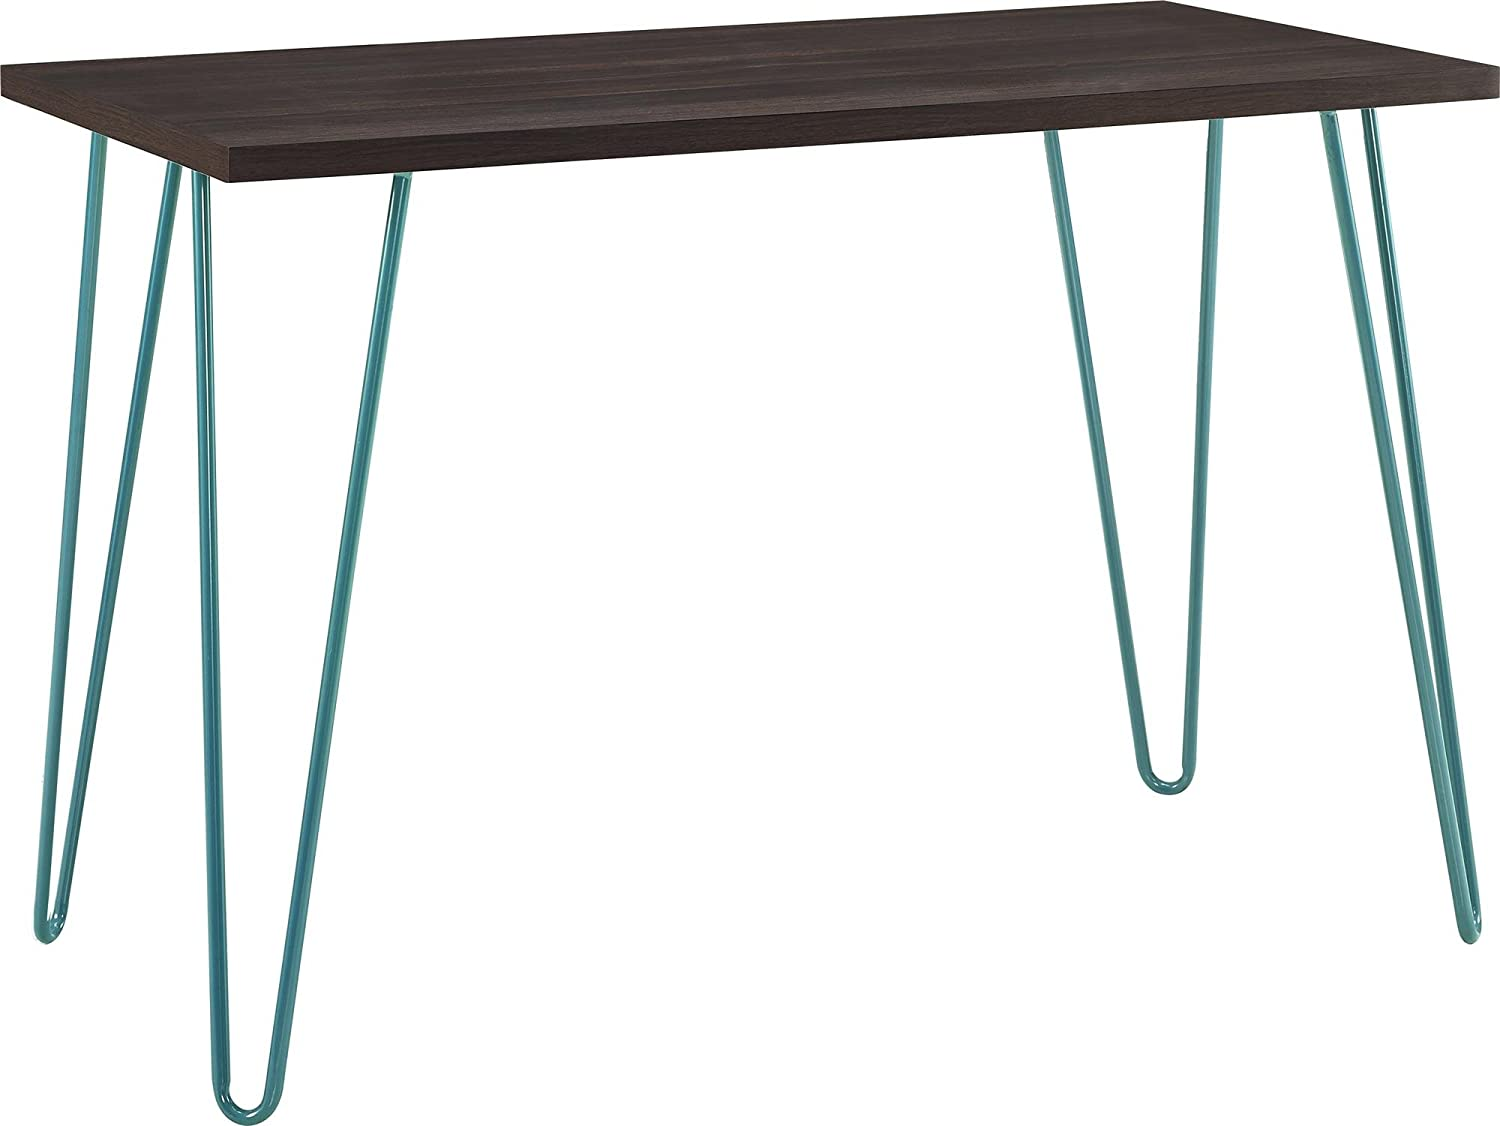 Amazon.com: Ameriwood Home Owen Retro Desk, Espresso/Teal: Kitchen on bed legs, spring legs, anklet legs, bench legs, tie legs, collapsible workbench diy k legs, ms legs, pencil legs, tiffany legs, grill legs, traveler floor radio with legs, hand legs, table legs, wire legs, wedding legs, painted legs, halloween legs, blade legs, holiday legs, ankle straps legs,